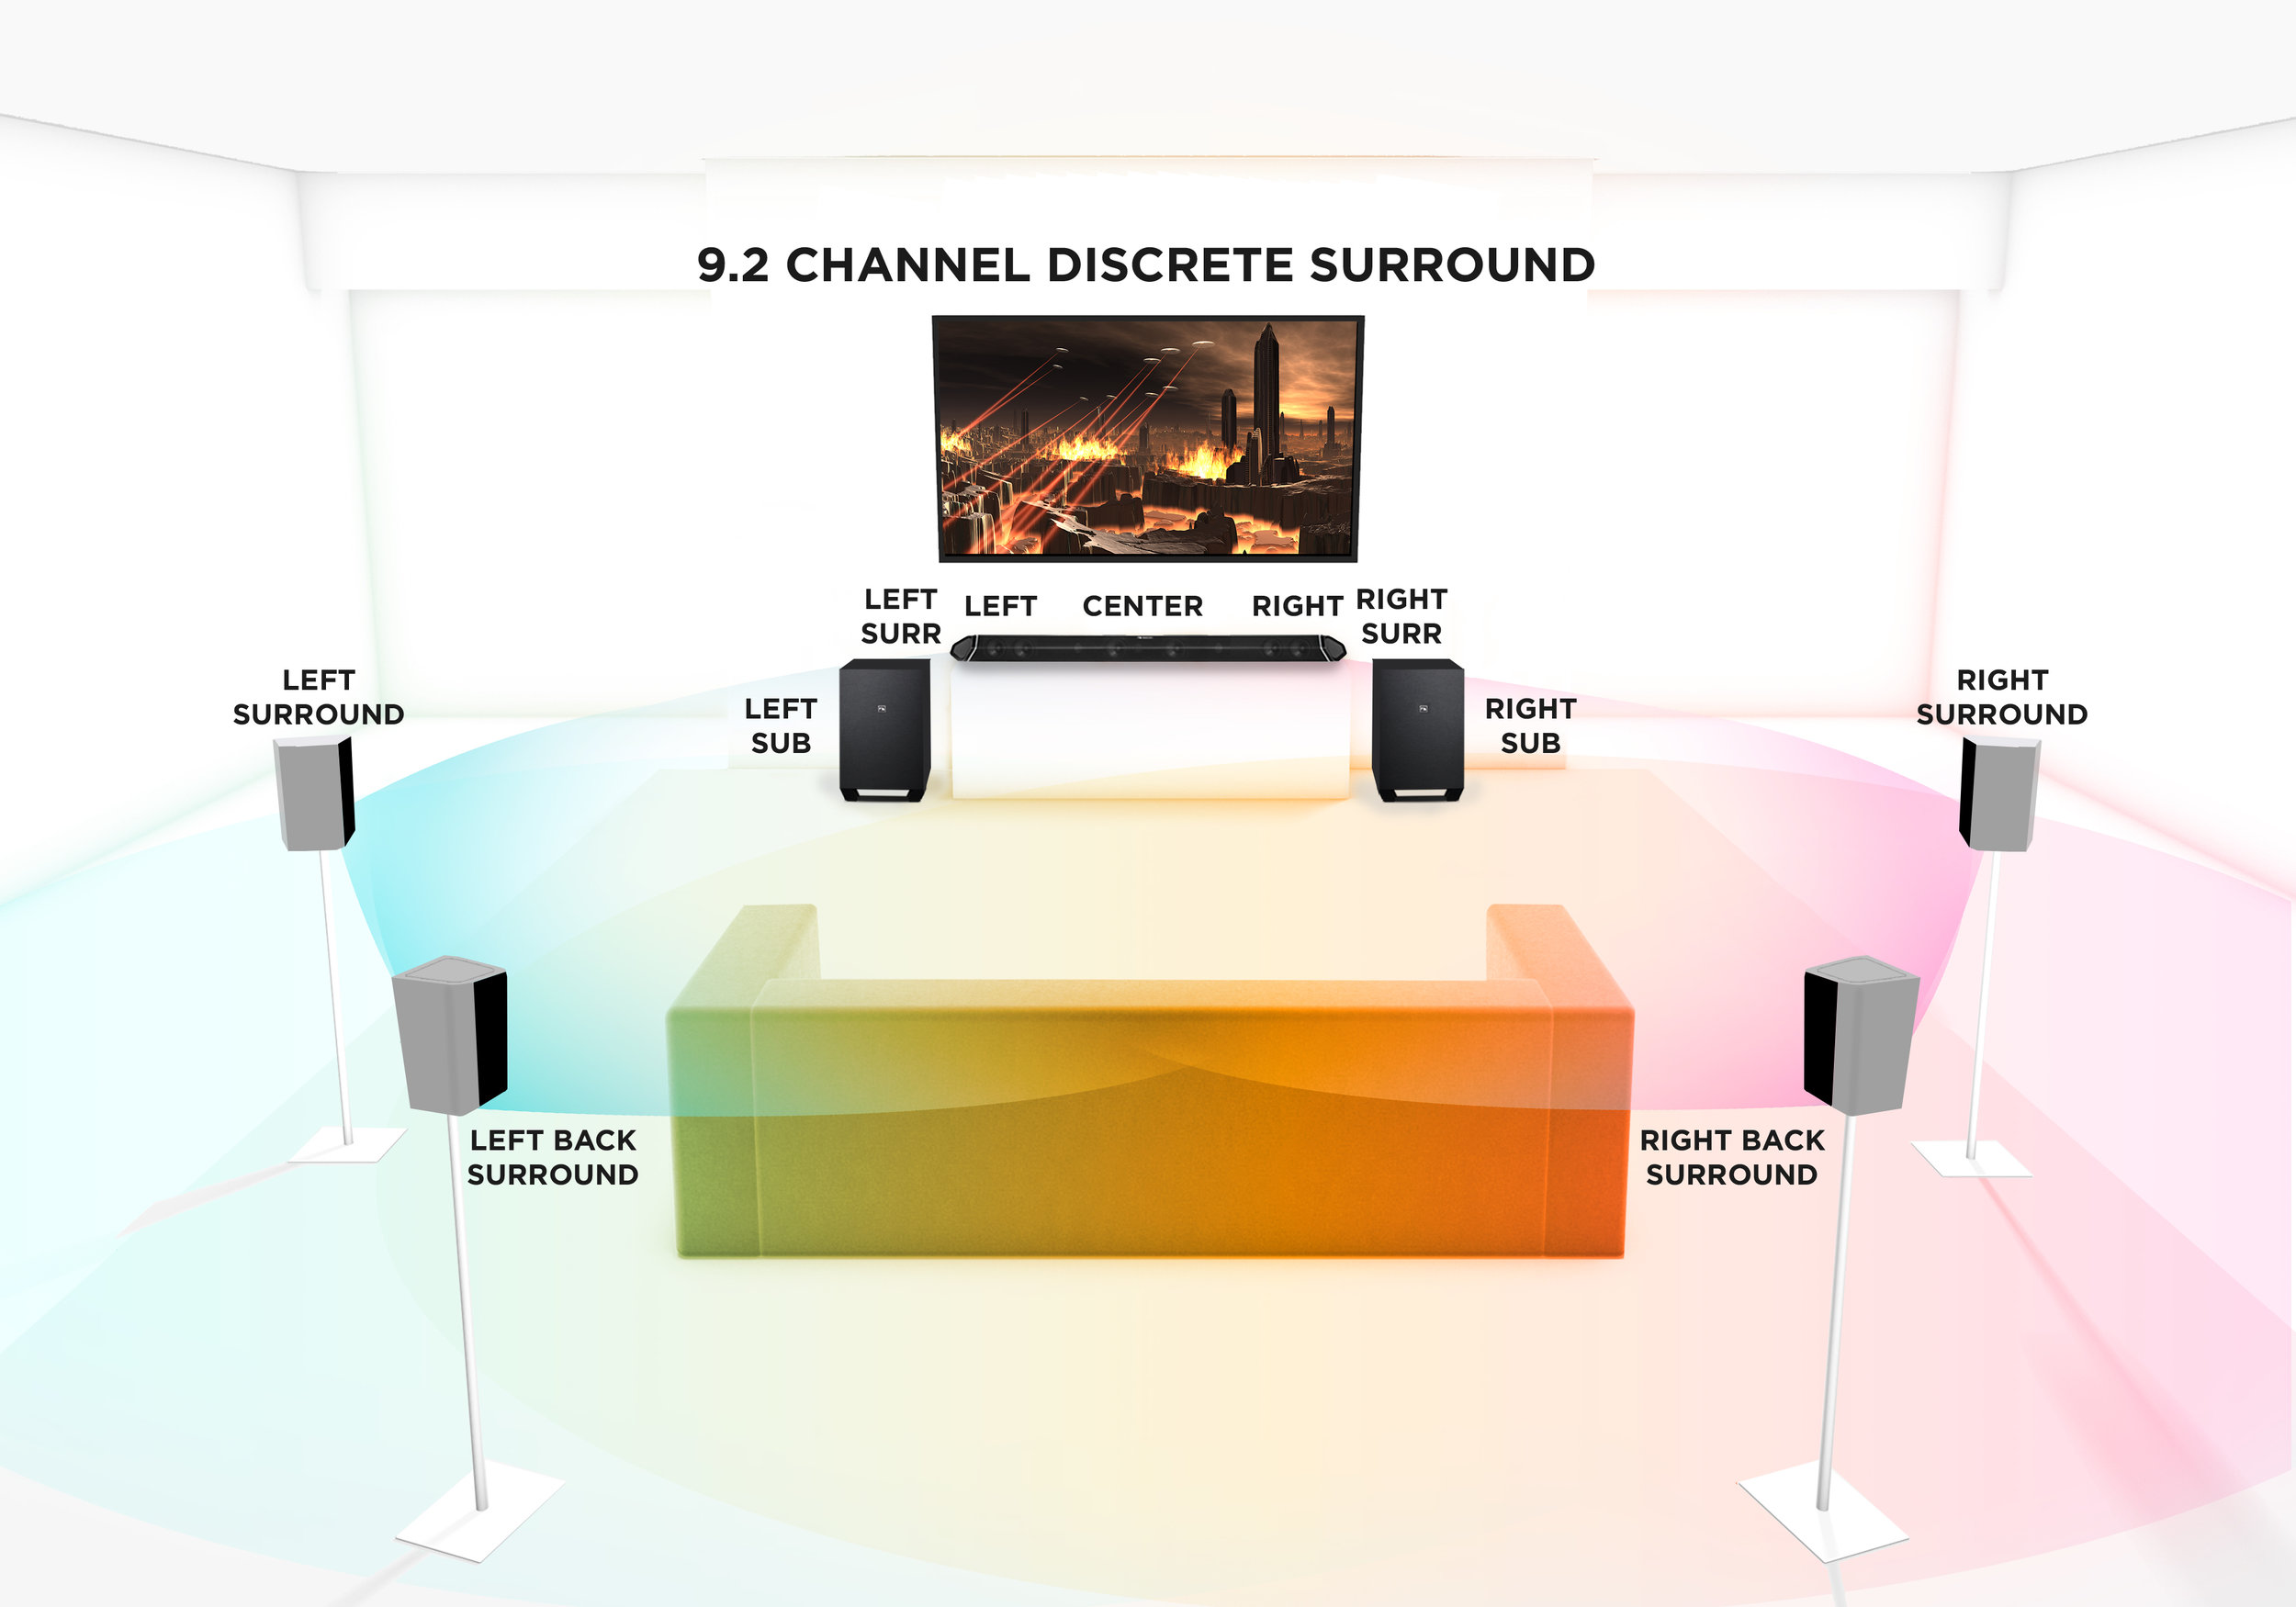 9.2-channel-discrete-surround-placement.jpg